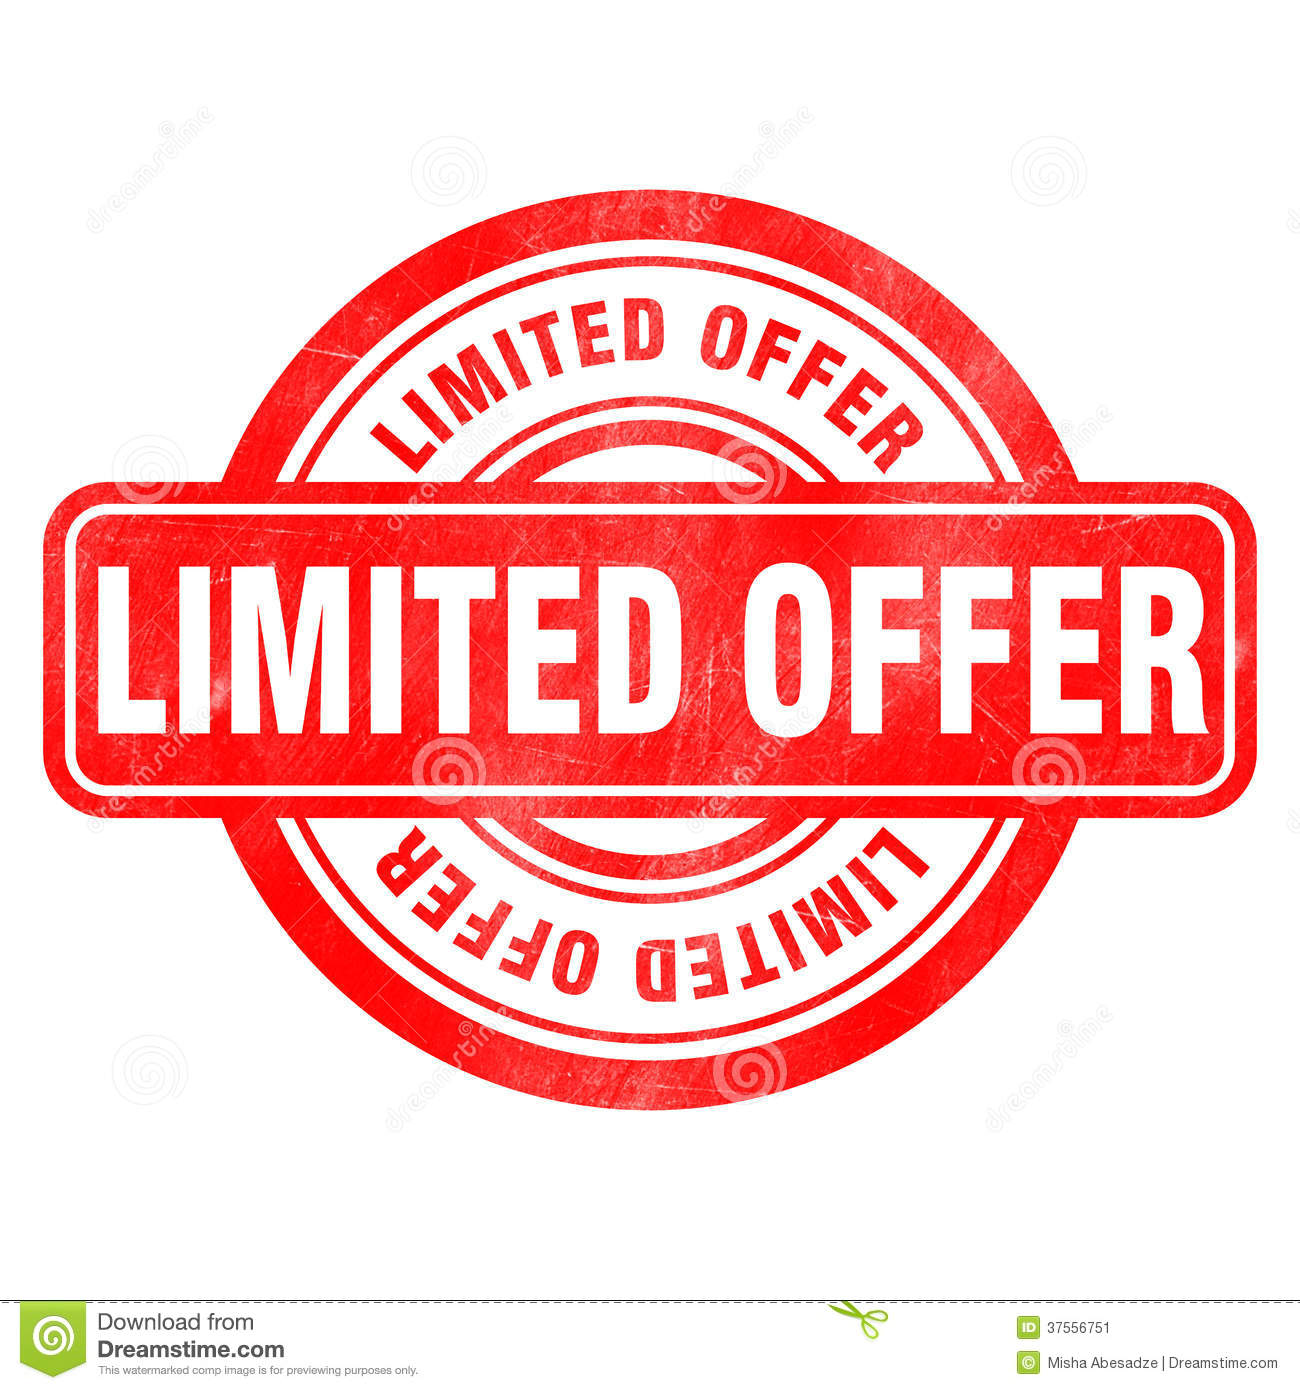 Stamp of Limited offer